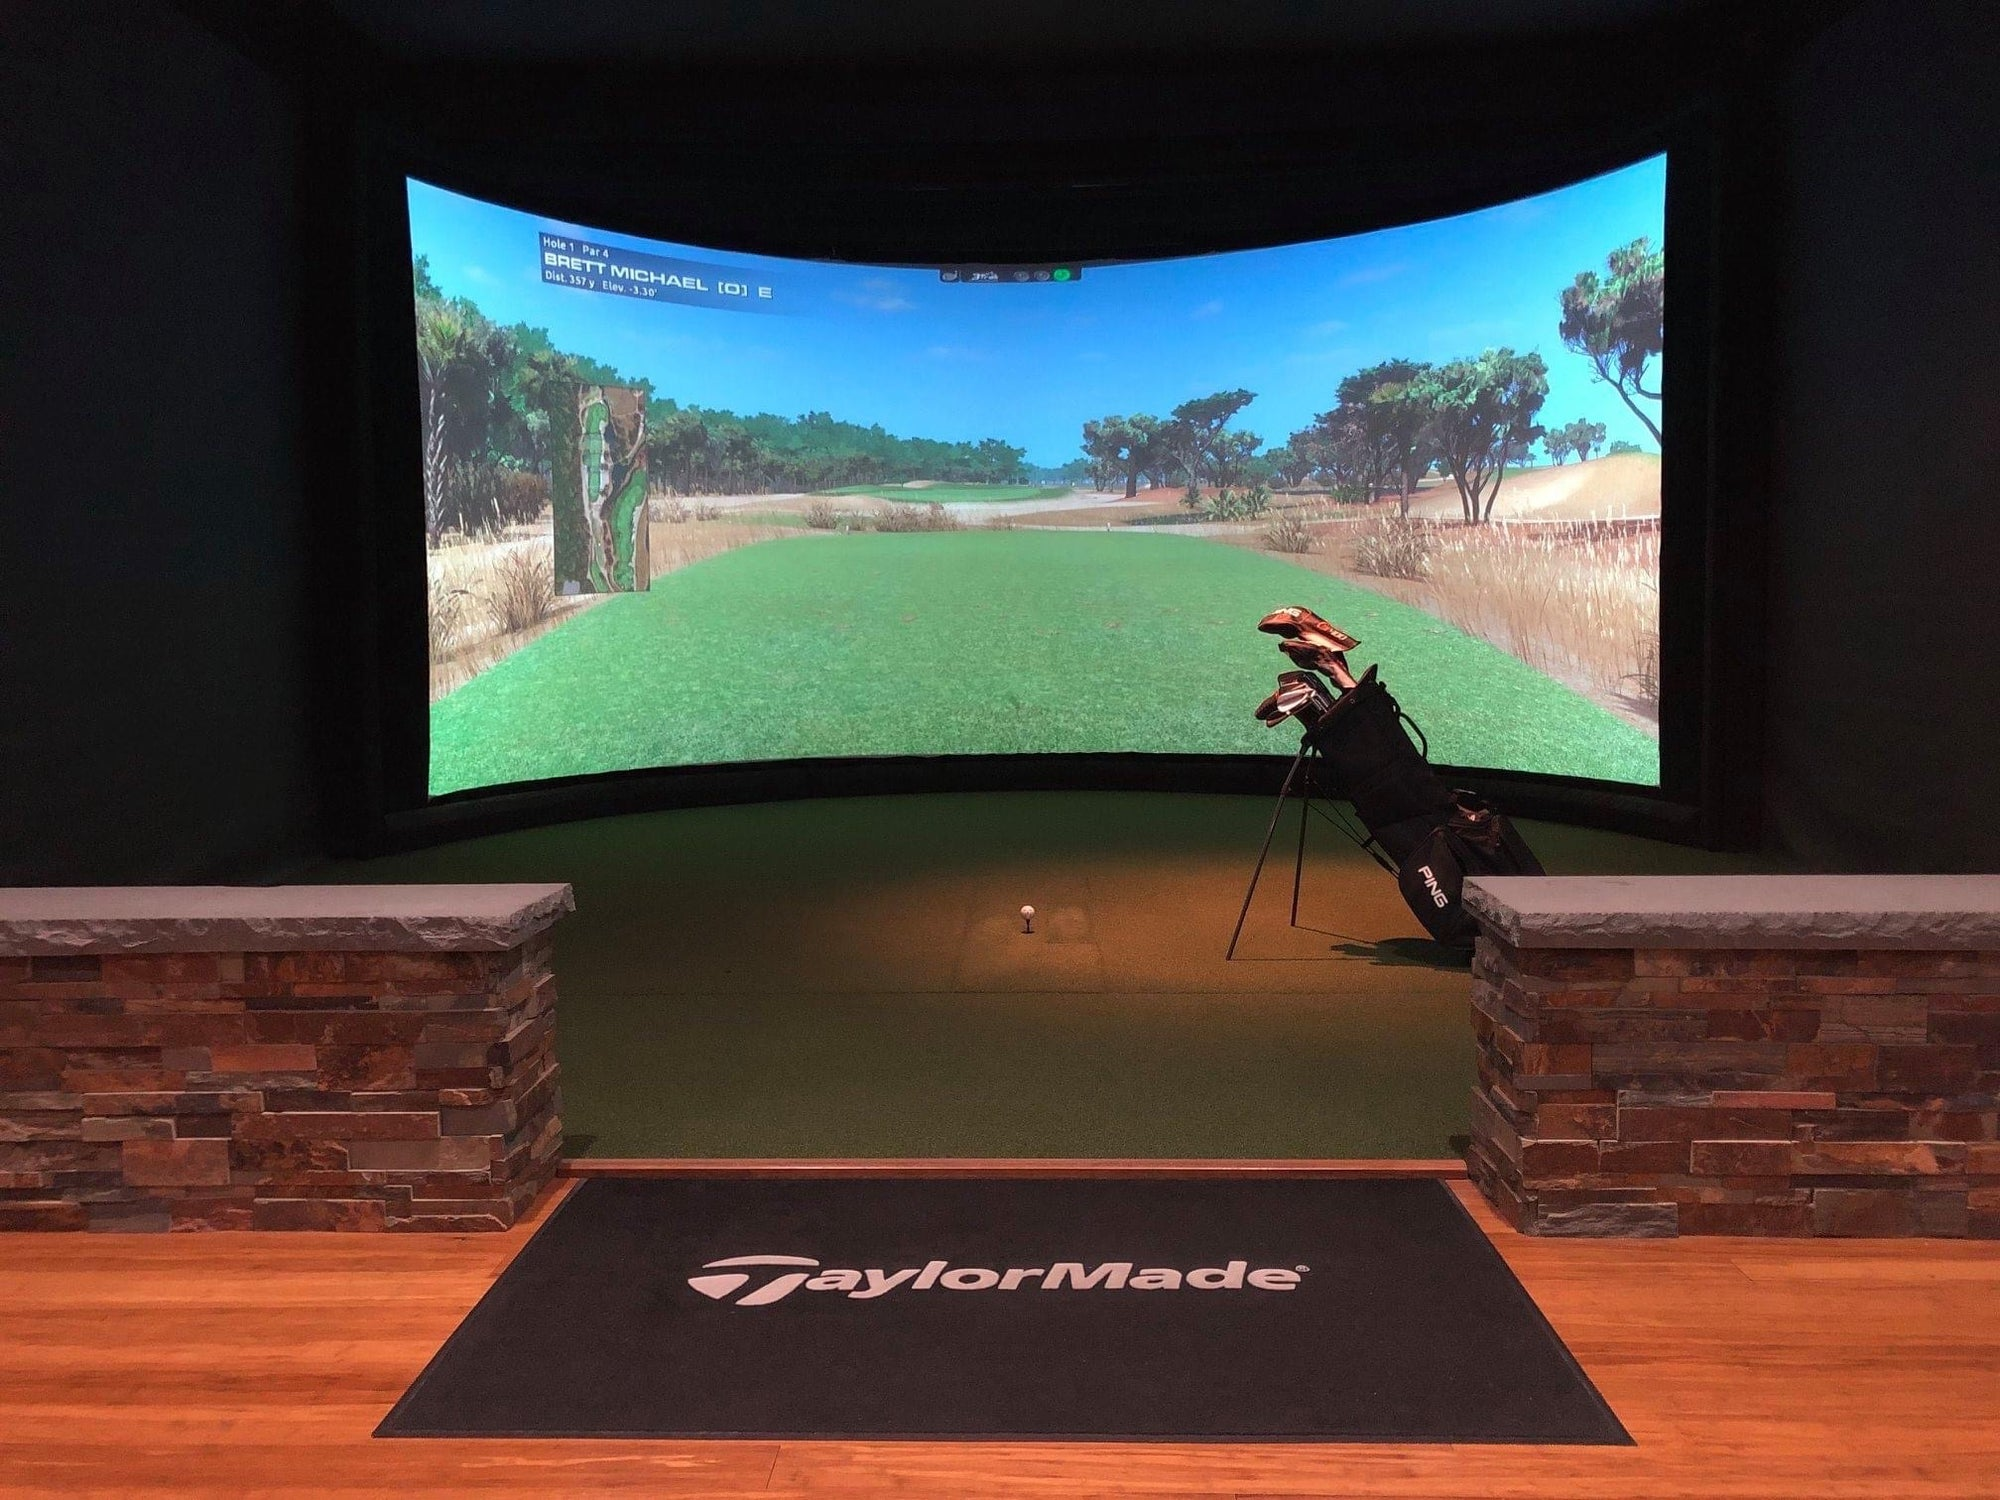 1-2 Player Golf Simulator Rental